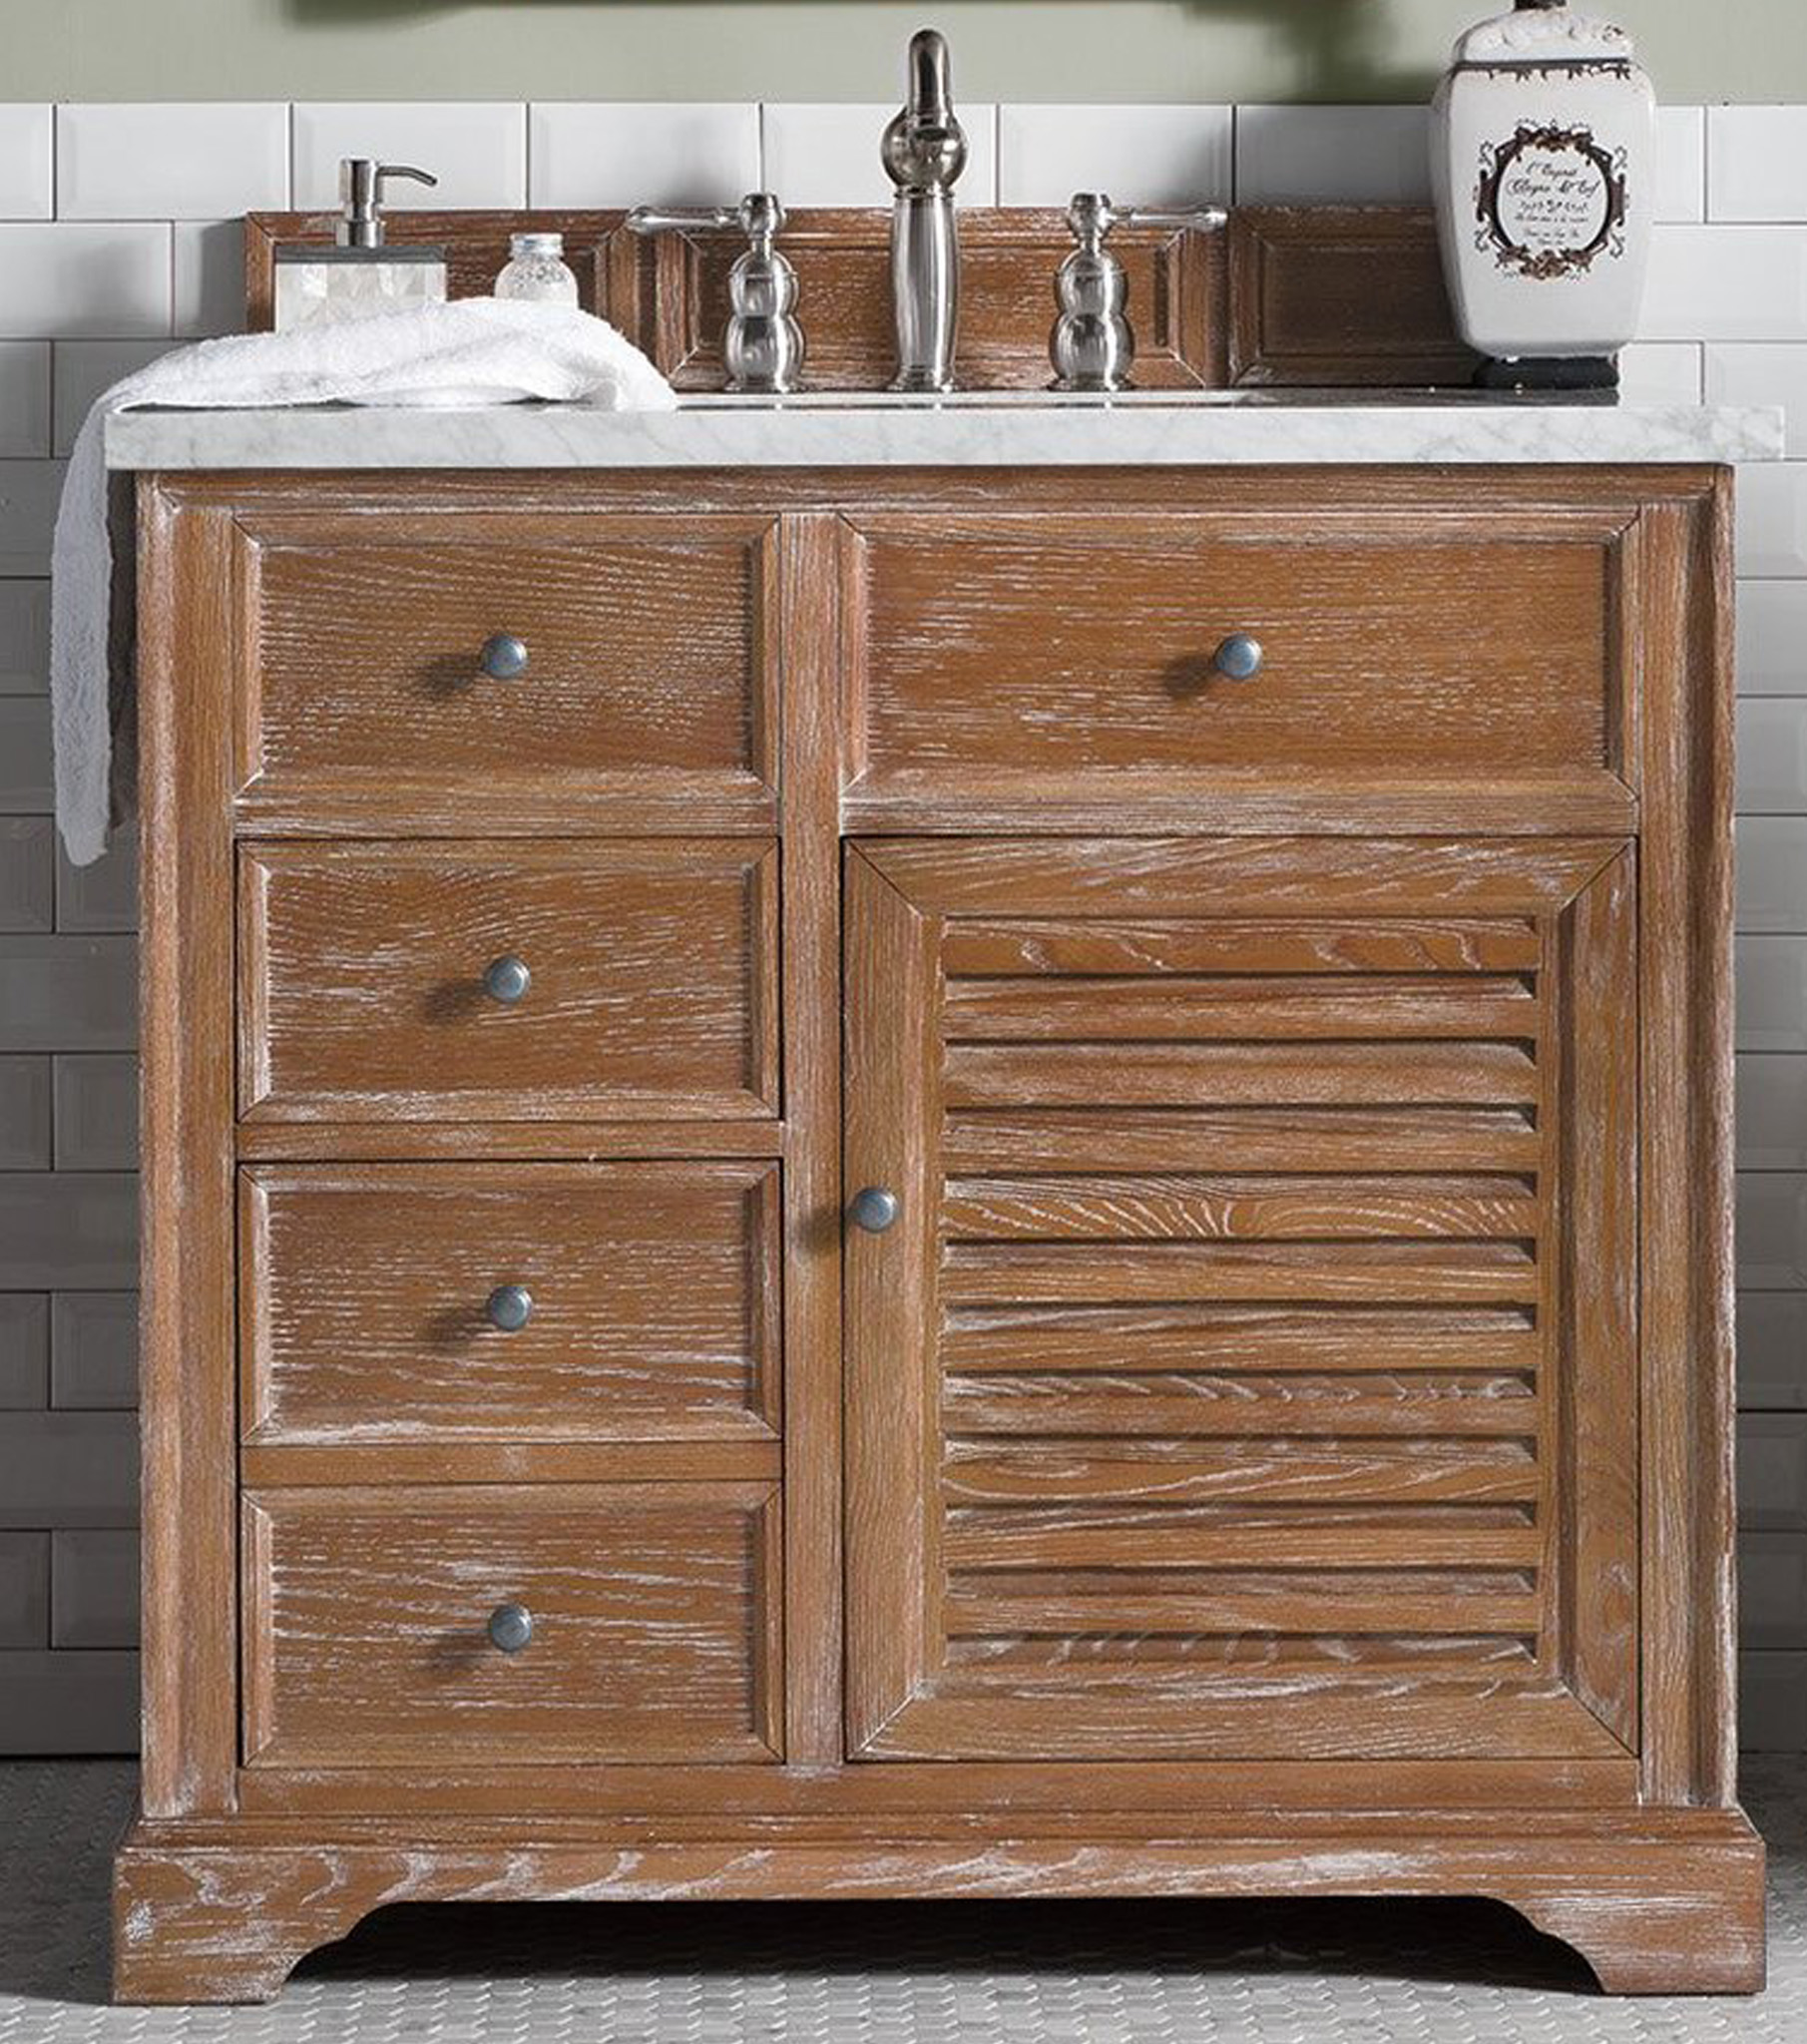 James Martin, Savannah Collection, 36 inch Bathroom Vanity in Driftwood Finish, with Top options